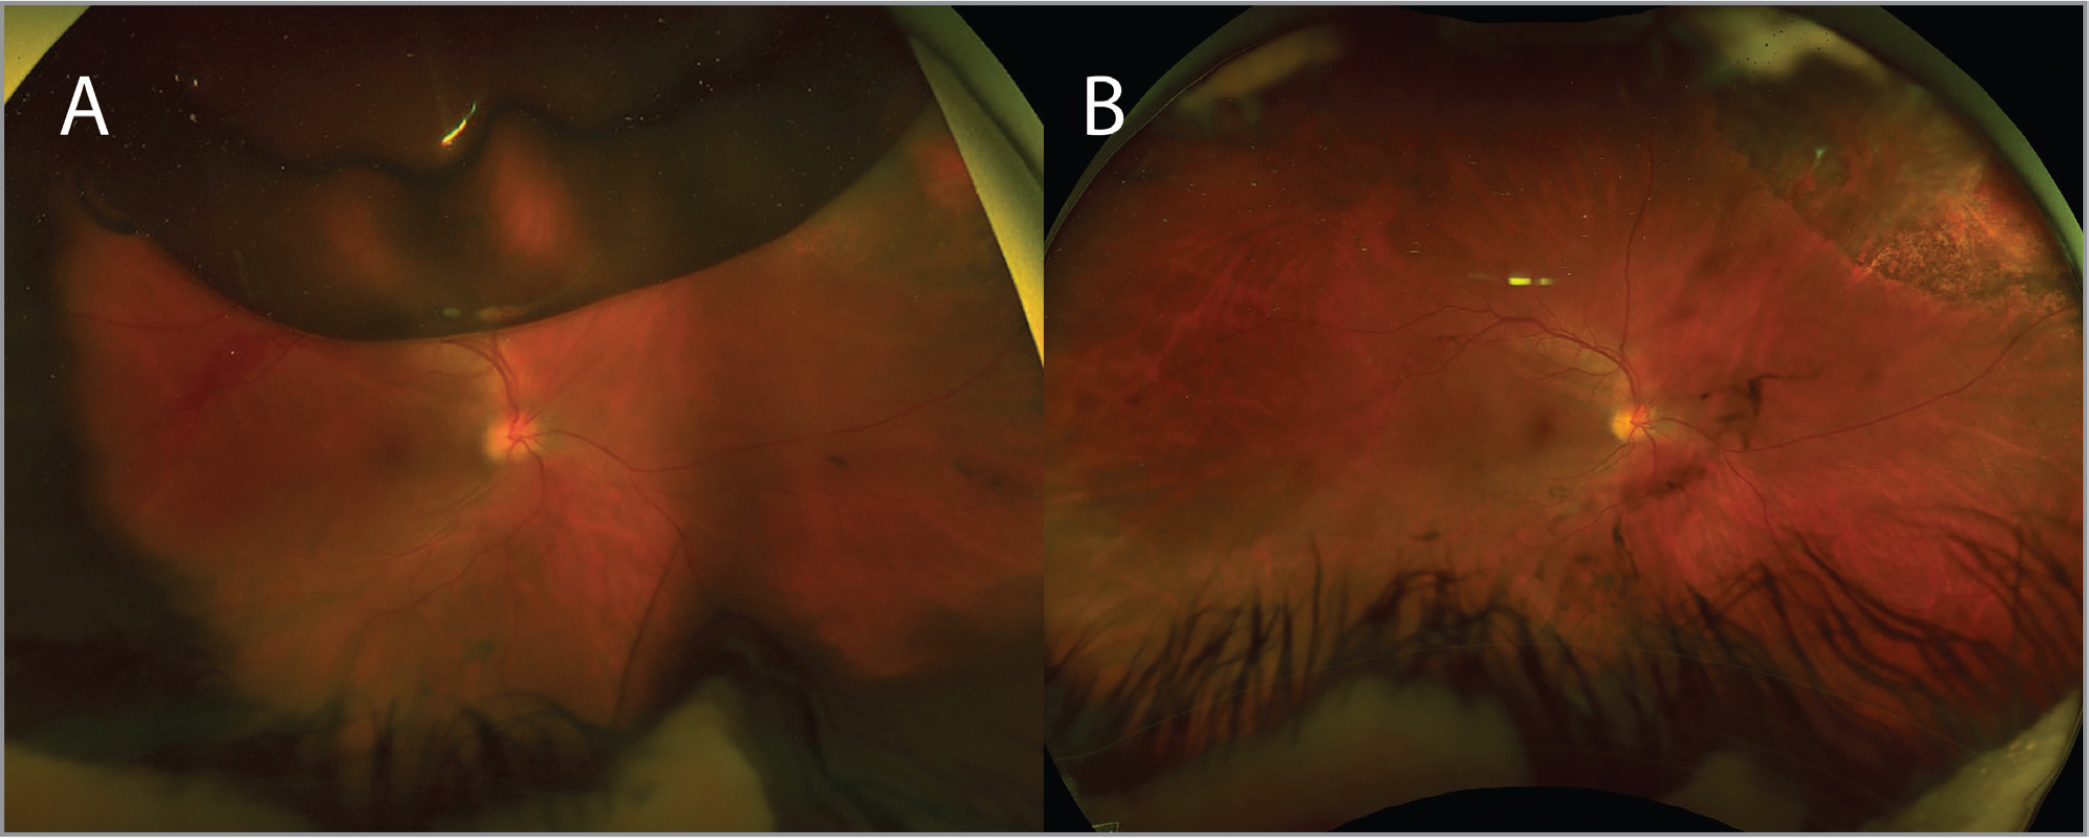 (A) Widefield fundus photo of the right eye (OD) at the 1-week postoperative visit demonstrating attached retina and approximately 20% to 25% gas bubble fill. (B) Widefield fundus photo OD at the 1-month postoperative visit demonstrating attached retina, chorioretinal scar corresponding to cryotherapy treatment area, resolving vitreous hemorrhage, and fully resorbed gas bubble.